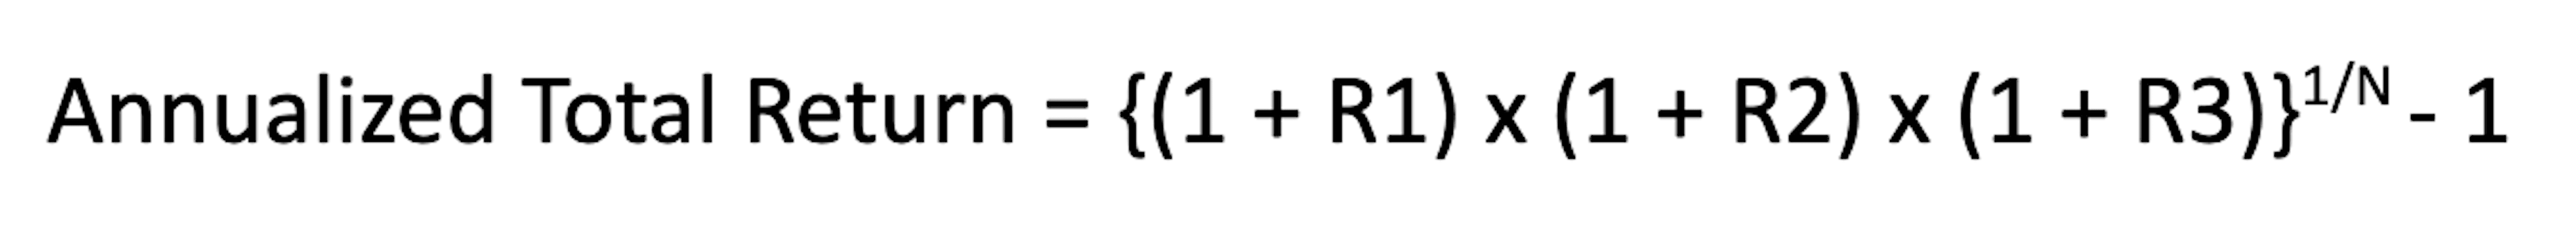 Annualized Total Return equation